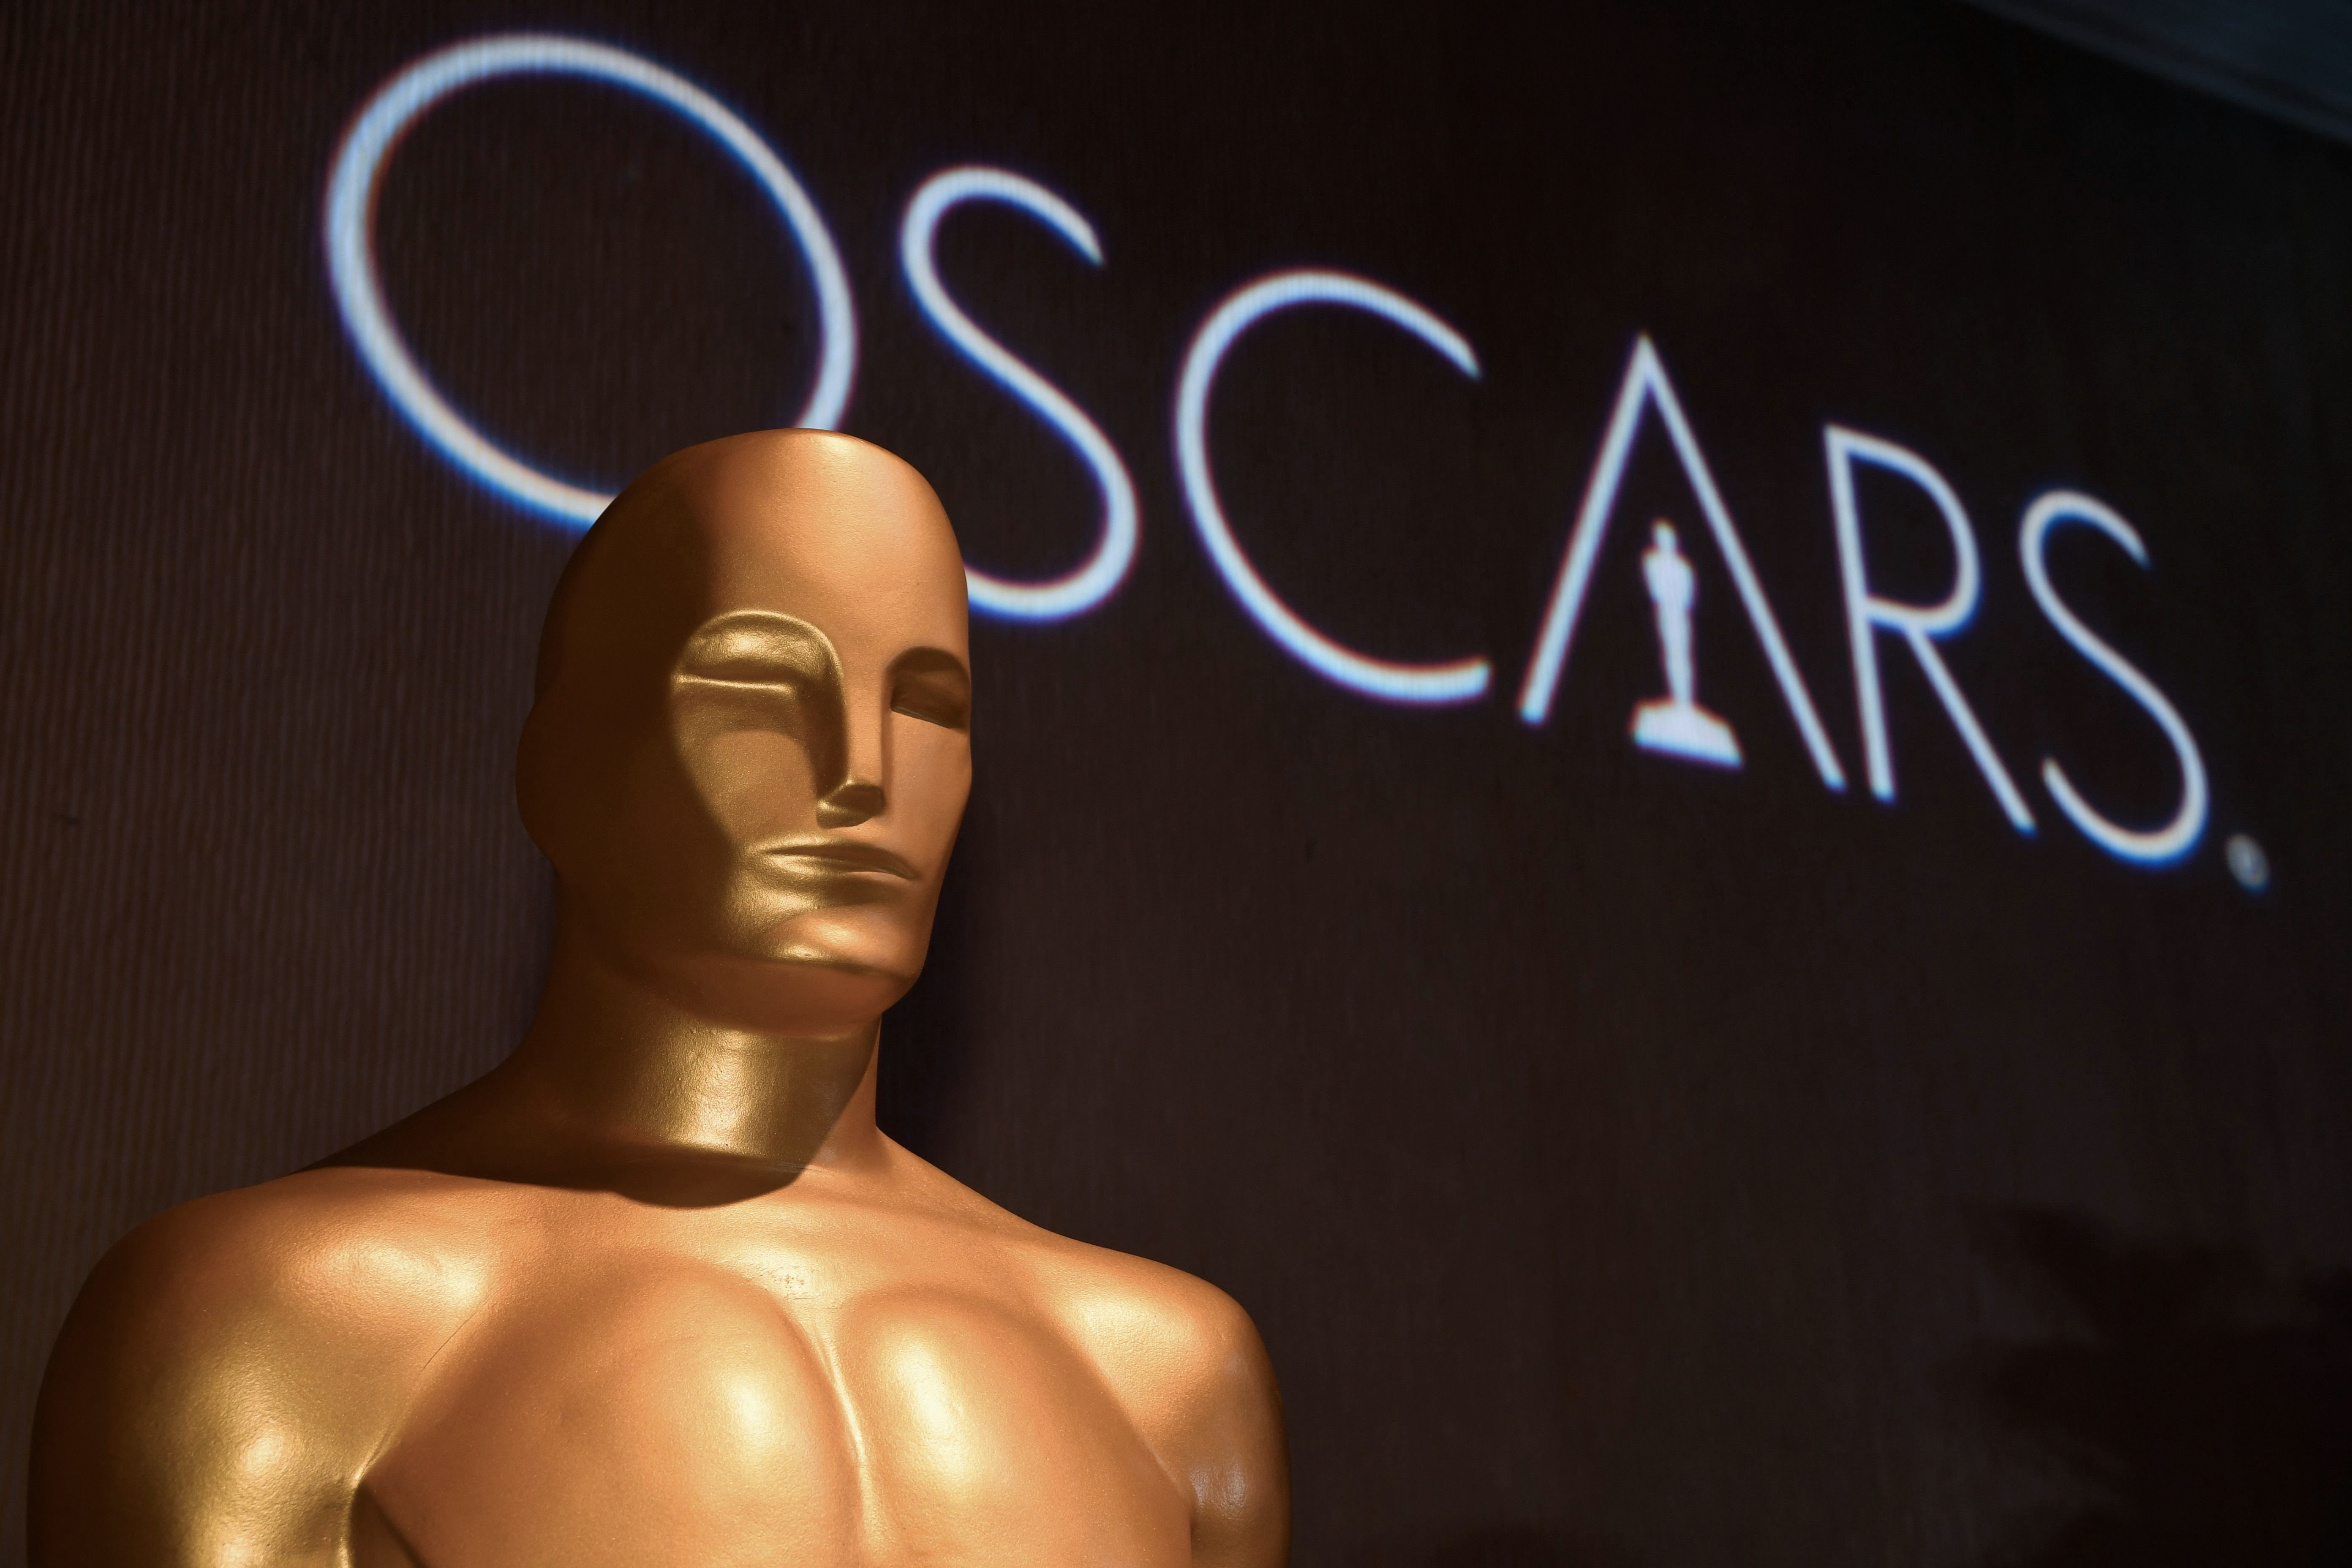 Oscar statue watches over the 91st Oscars Nominees Luncheon at the Beverly Hilton hotel on February 4, 2019 in Beverly Hills. (Photo by Robyn BECK / AFP)        (Photo credit should read ROBYN BECK/AFP/Getty Images)